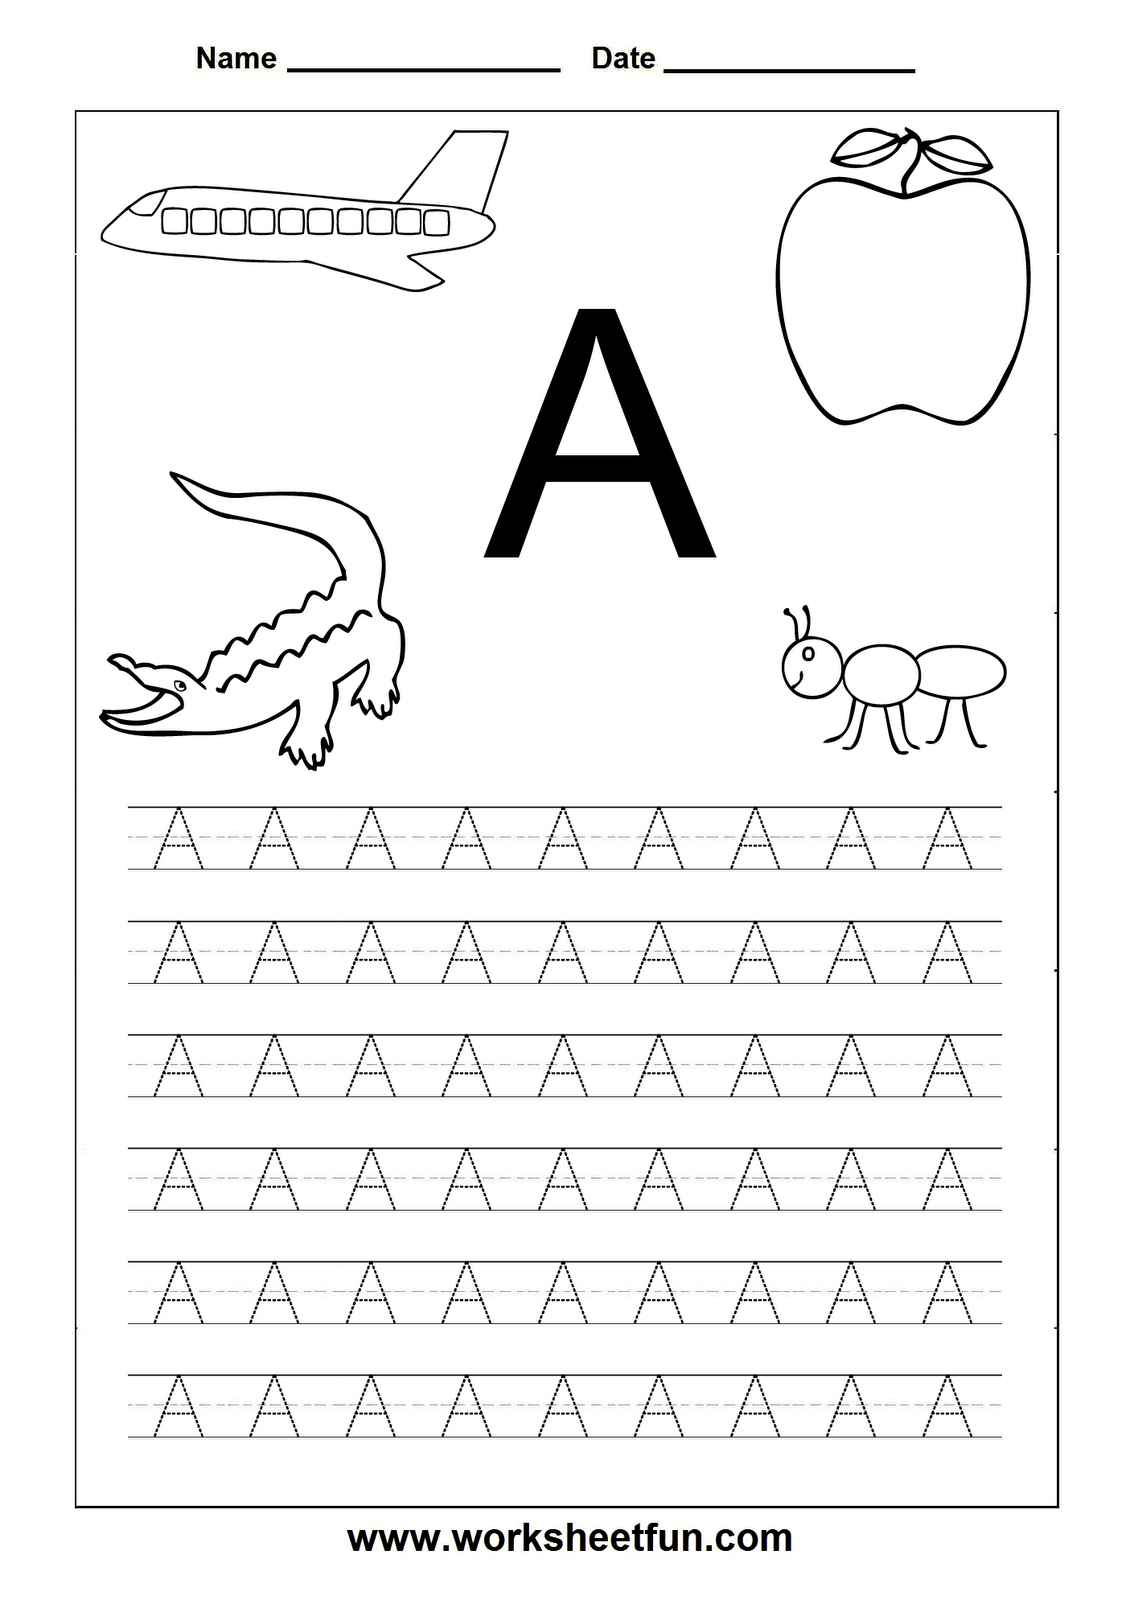 Guess The Missing Letters Worksheet Free Printable